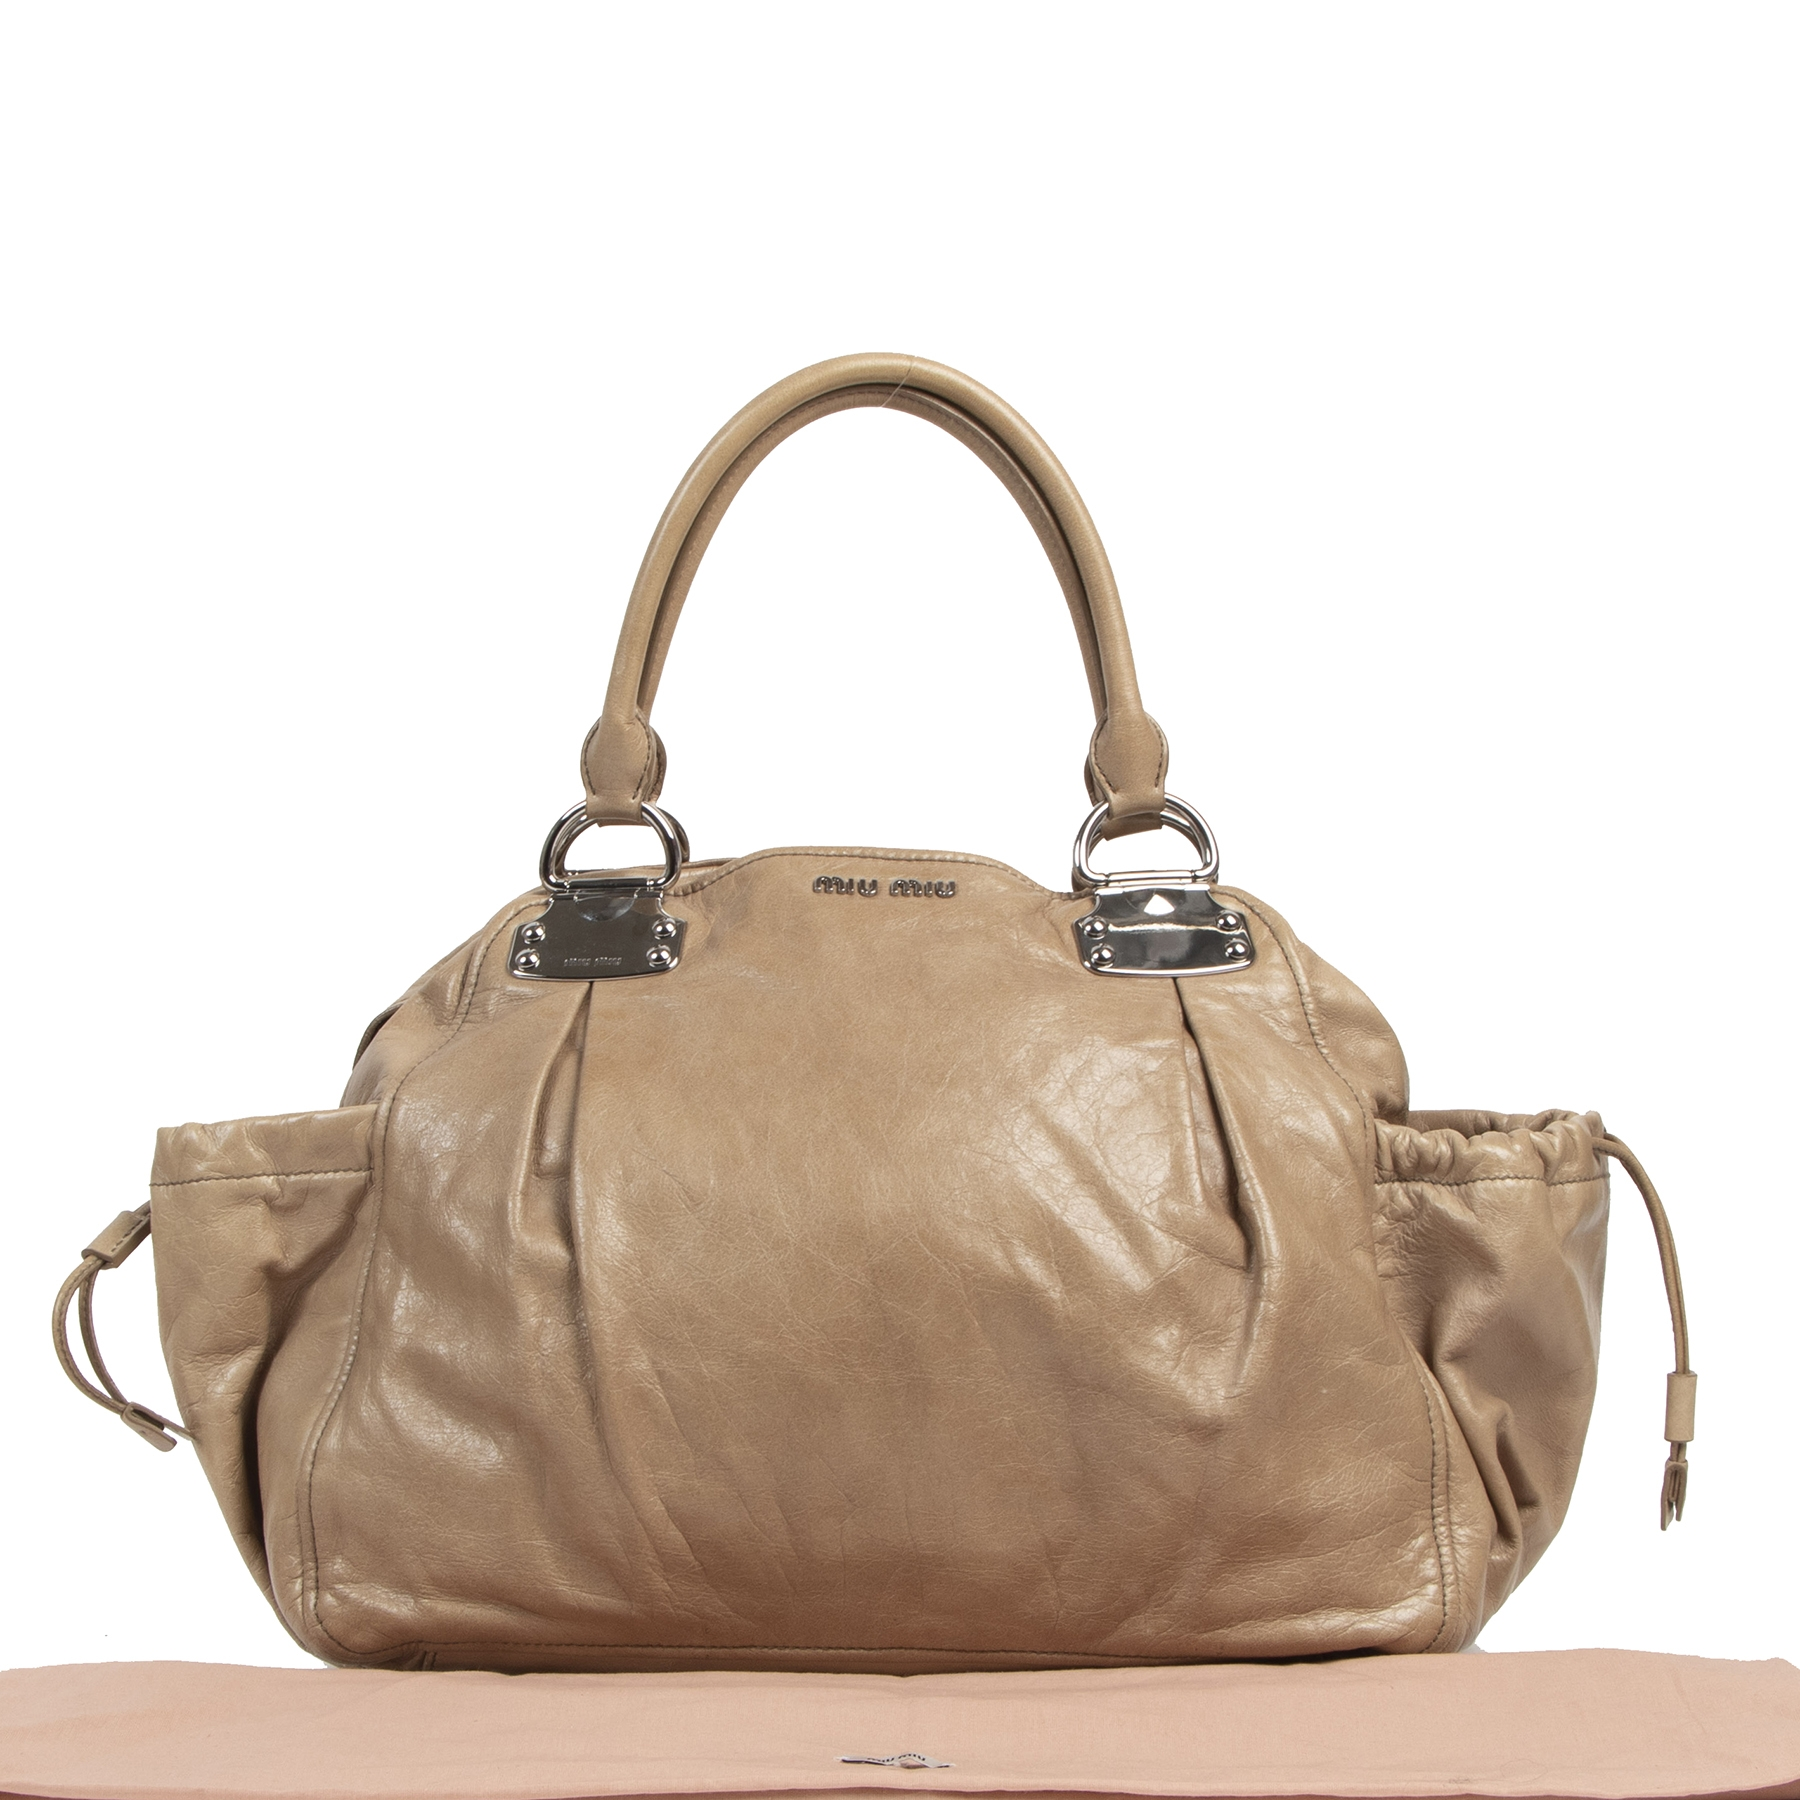 Authentieke tweedehands vintage Miu Miu Large Beige Shopping Bag koop online webshop LabelLOV